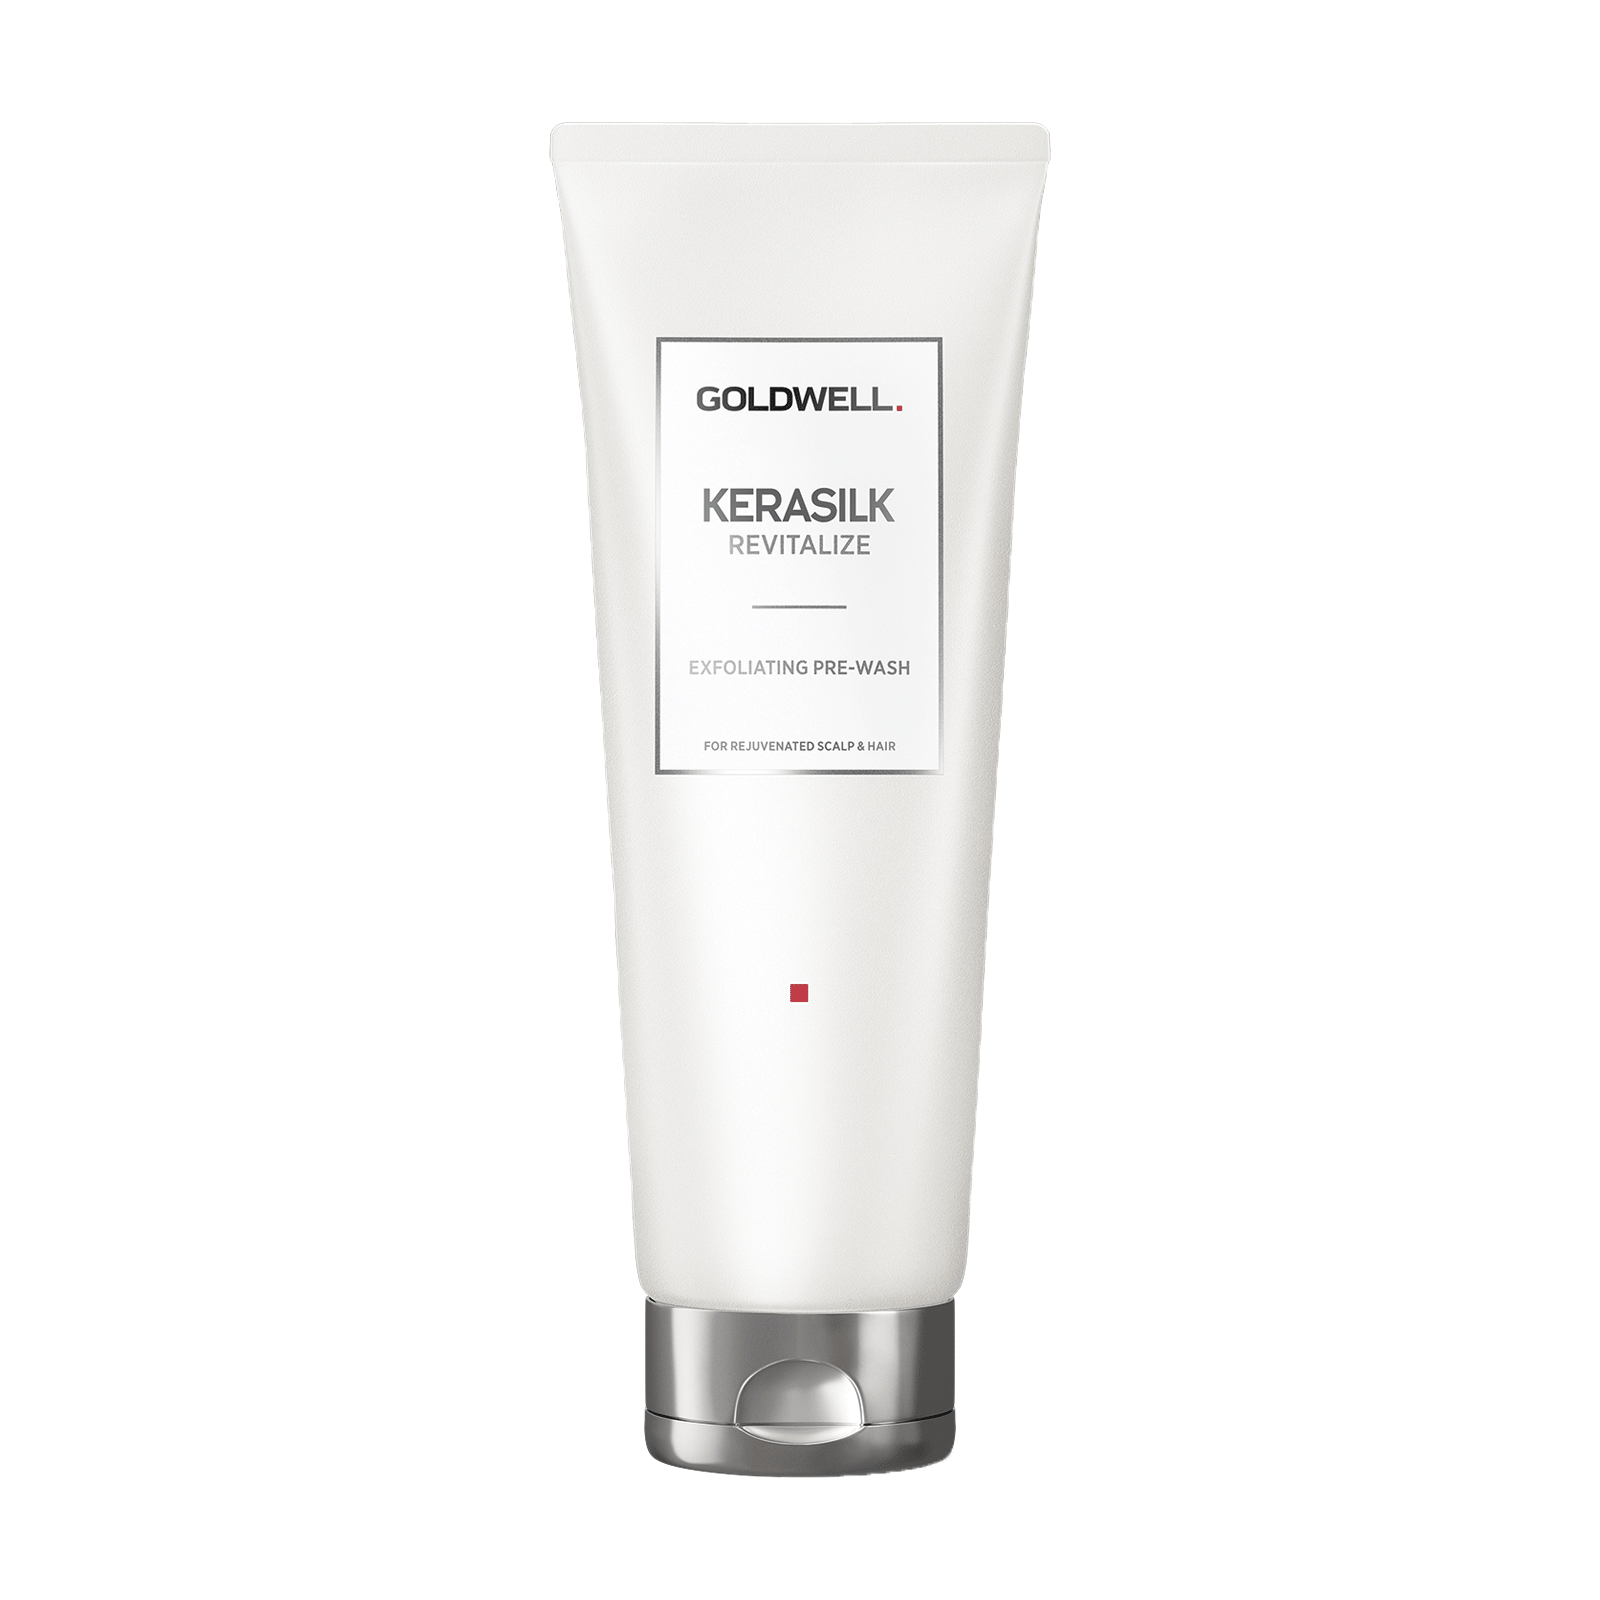 Kerasilk Revitalize Exfoliating Pre-Wash